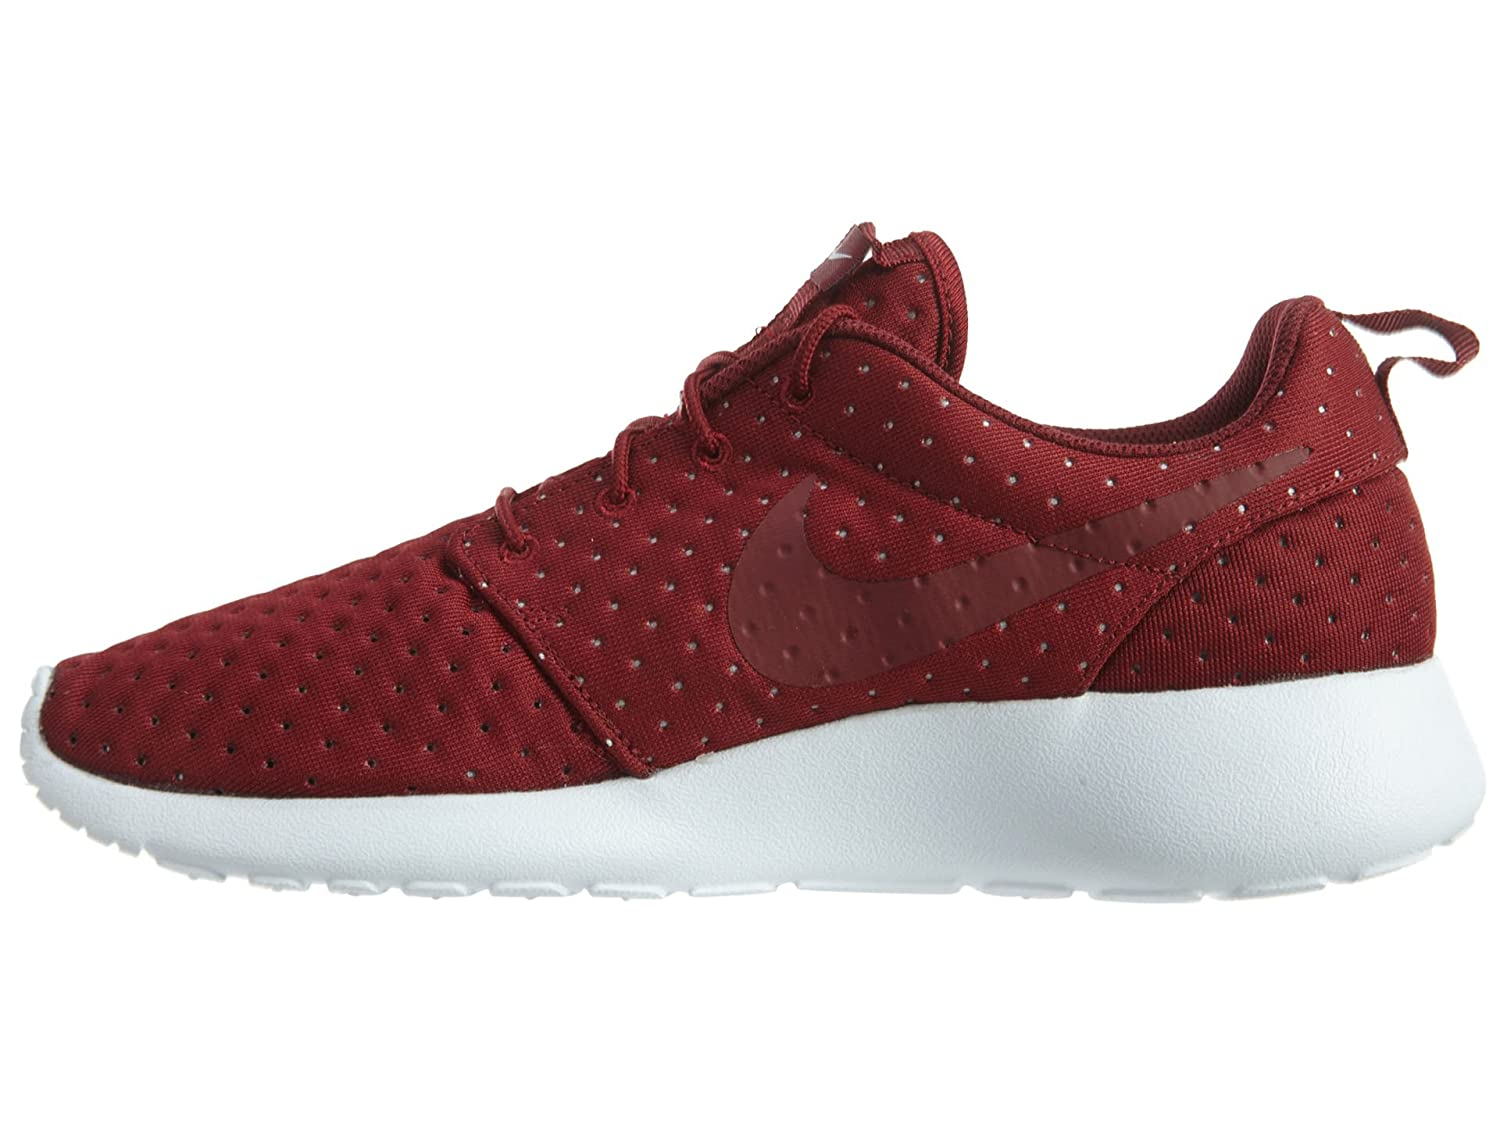 284a4011efb3 Amazon.com  Nike Roshe One Se Mens Running Shoes  Shoes